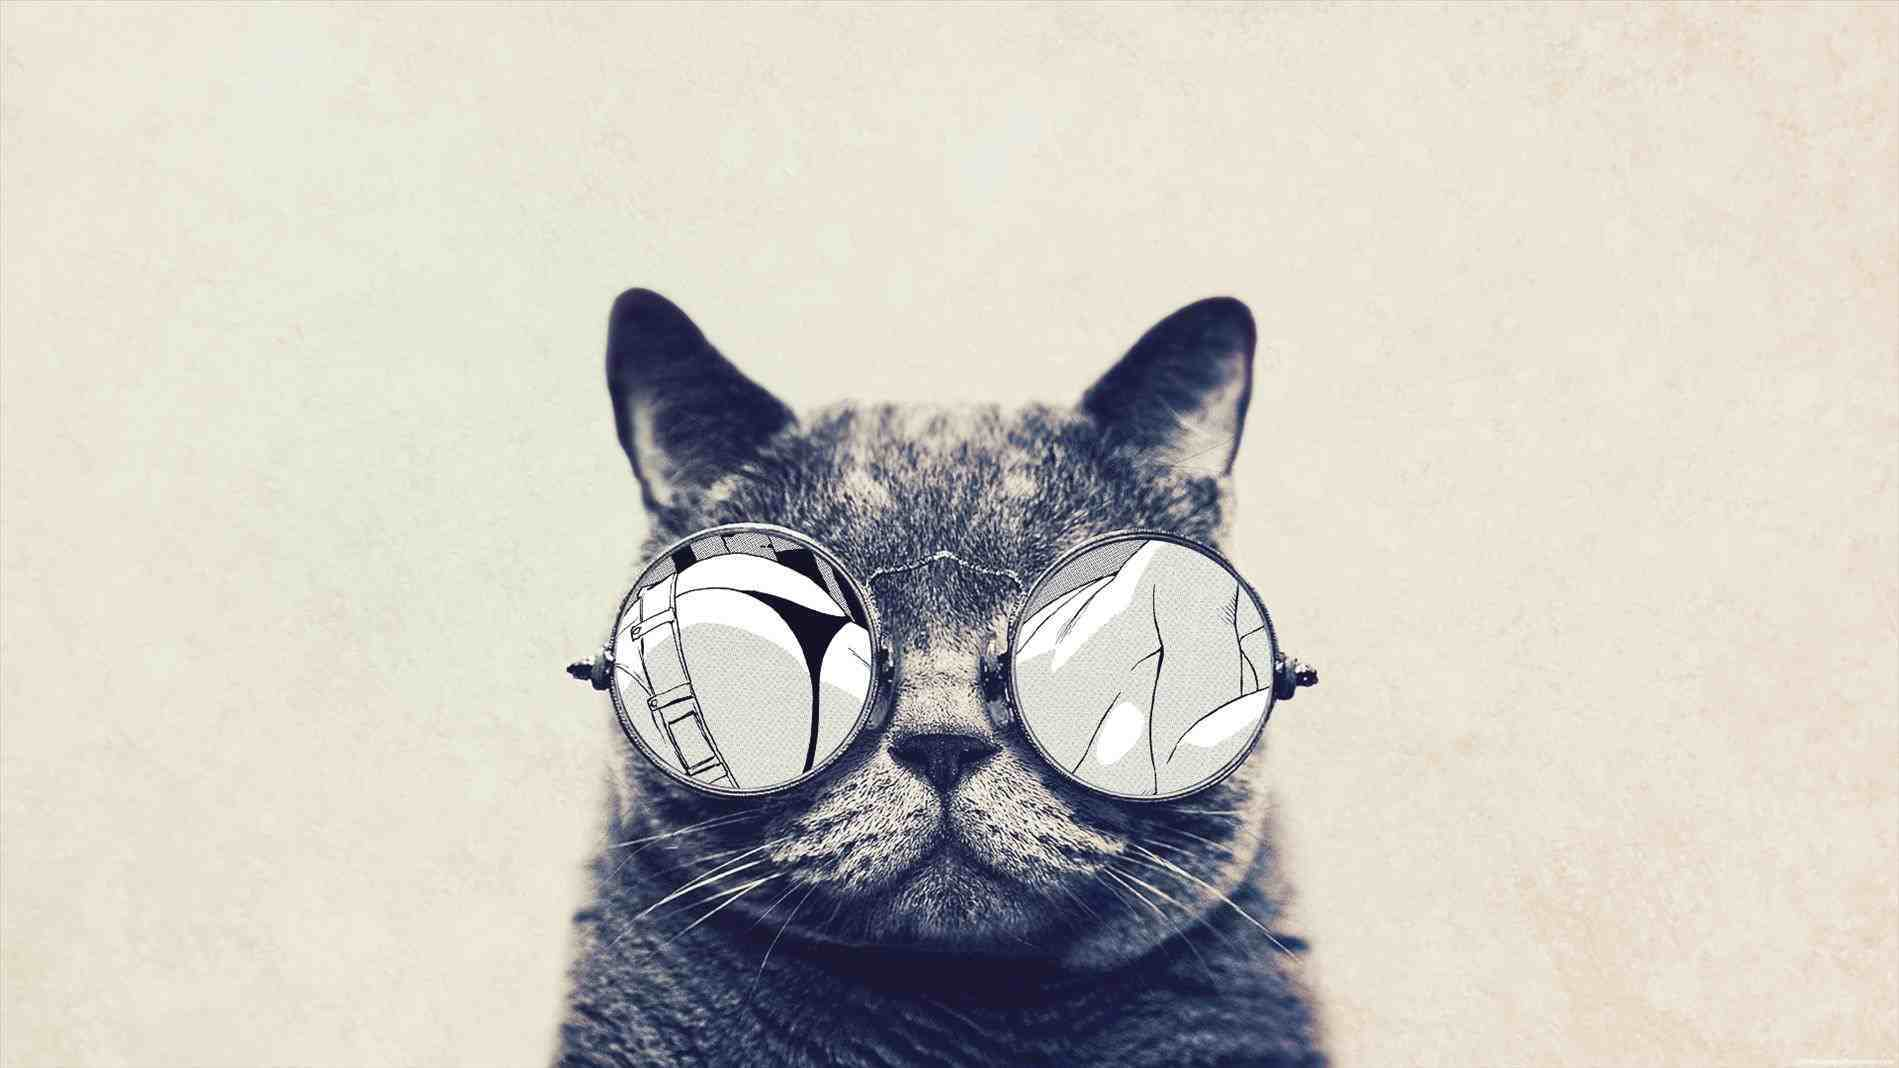 Hipster Cats Laptop Wallpapers Top Free Hipster Cats Laptop Backgrounds Wallpaperaccess